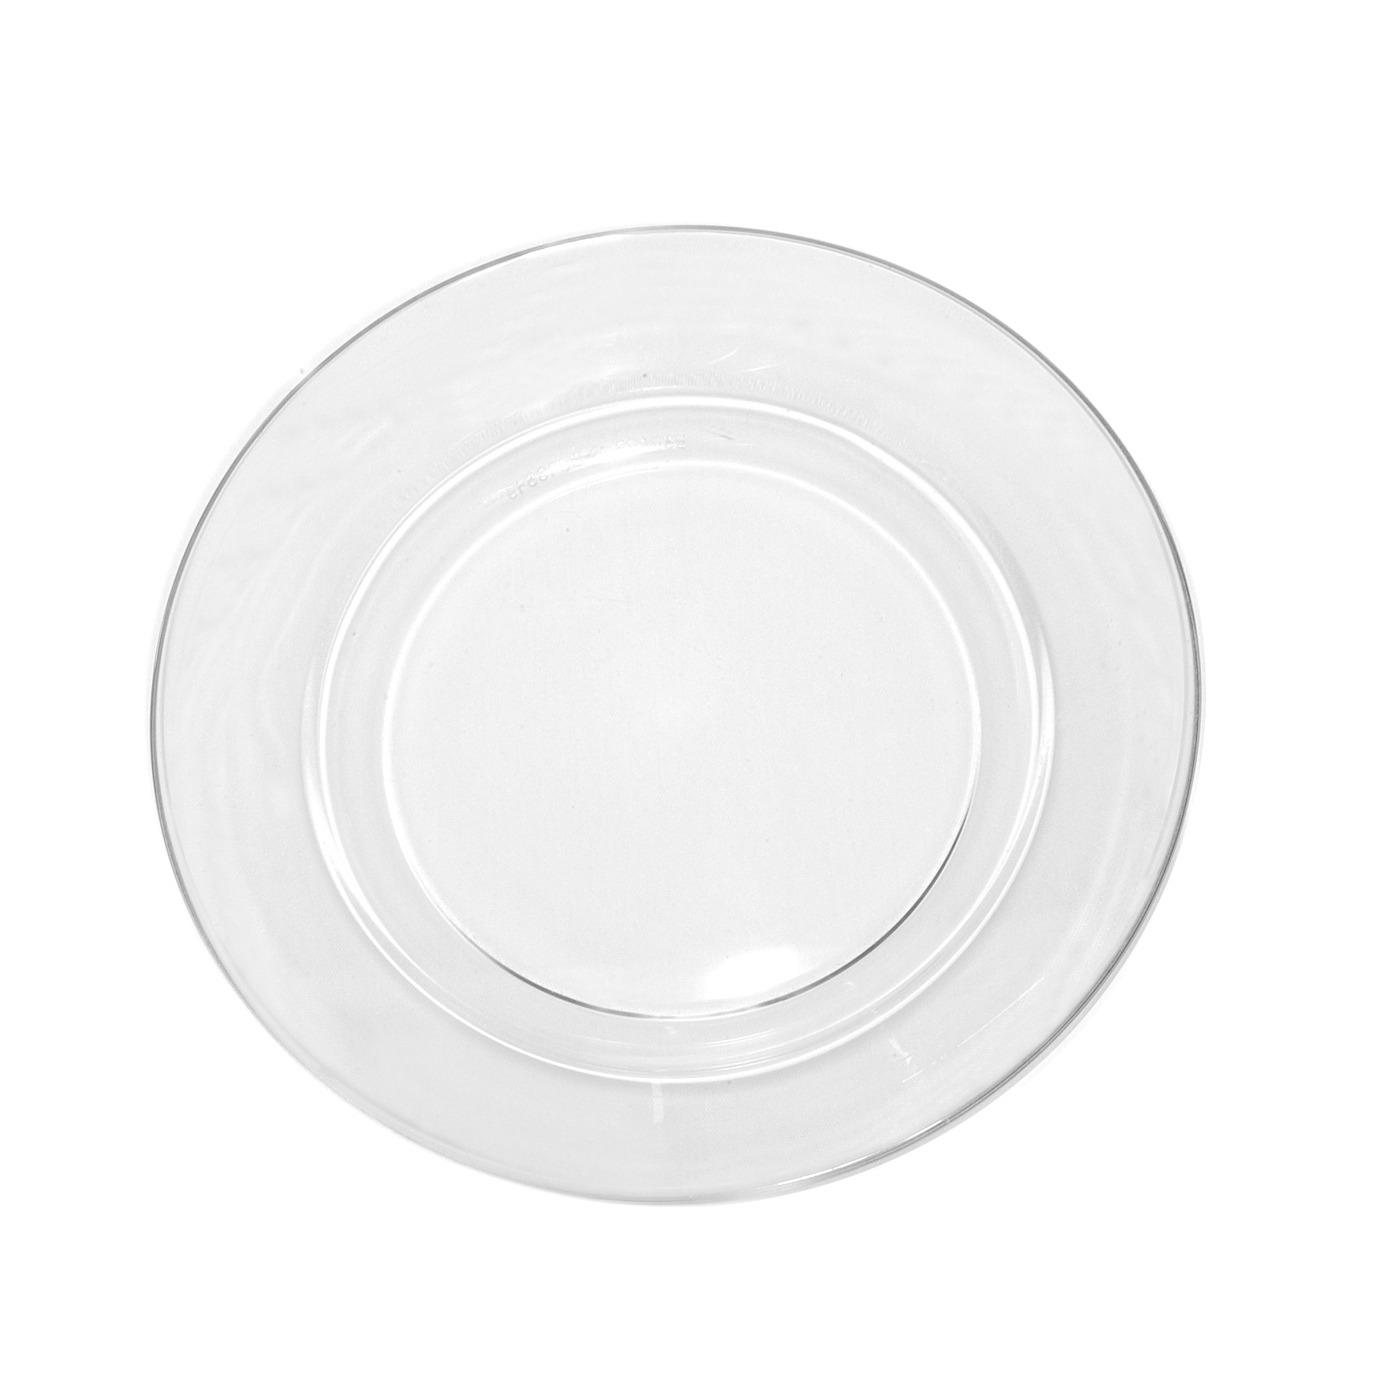 Clear Glass Collection -  B&B Plate 6.25""